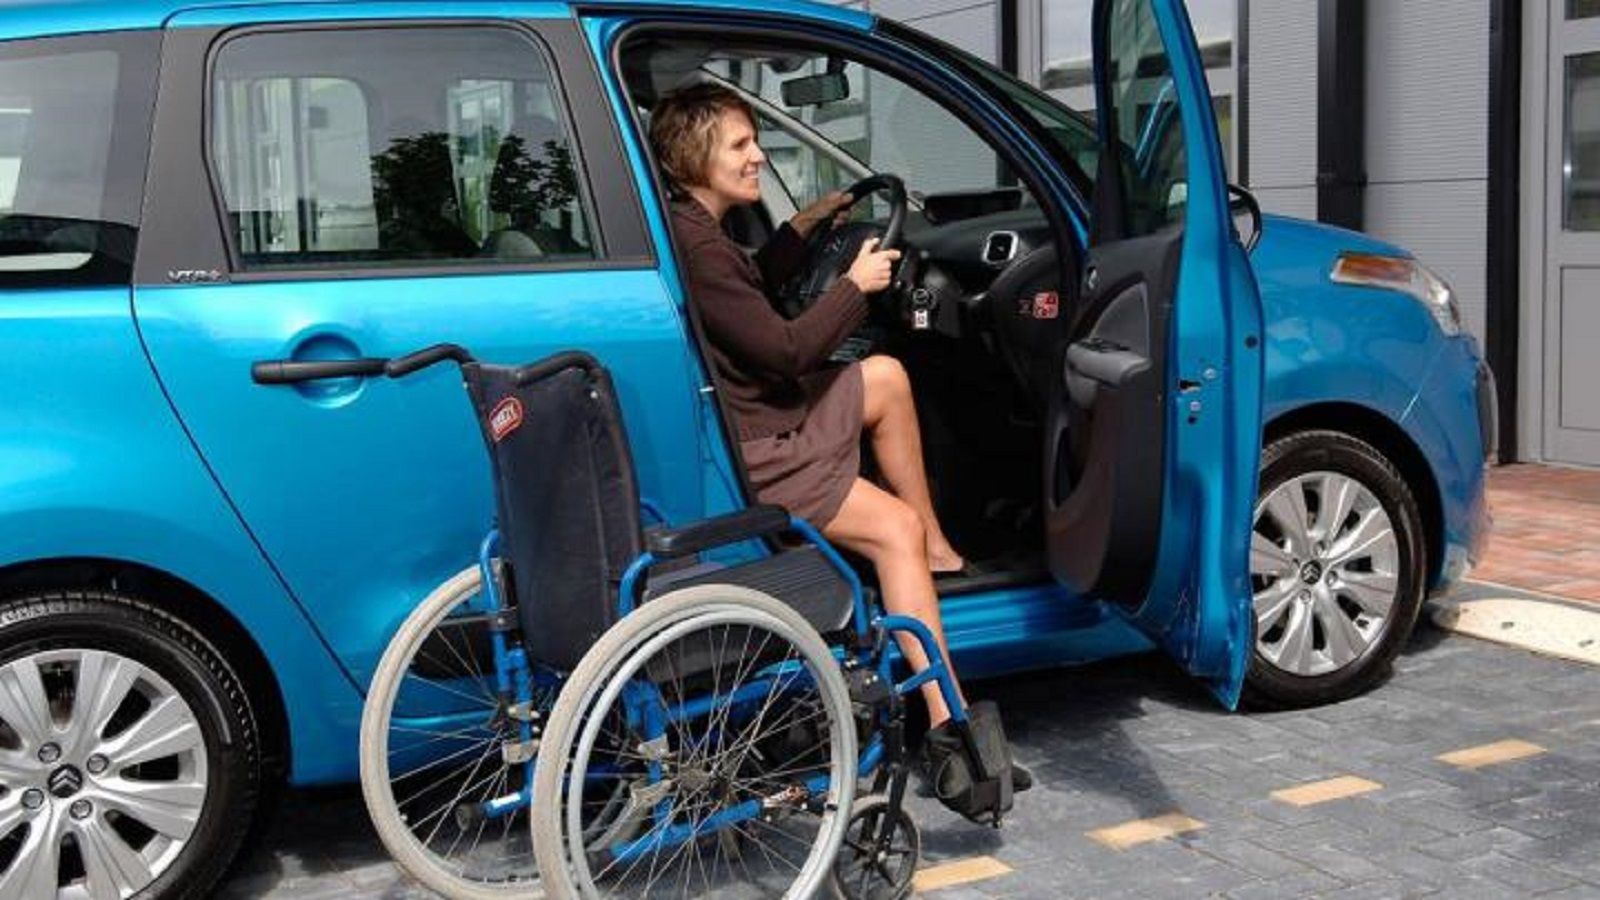 Lady climbing out a Motability vehicle